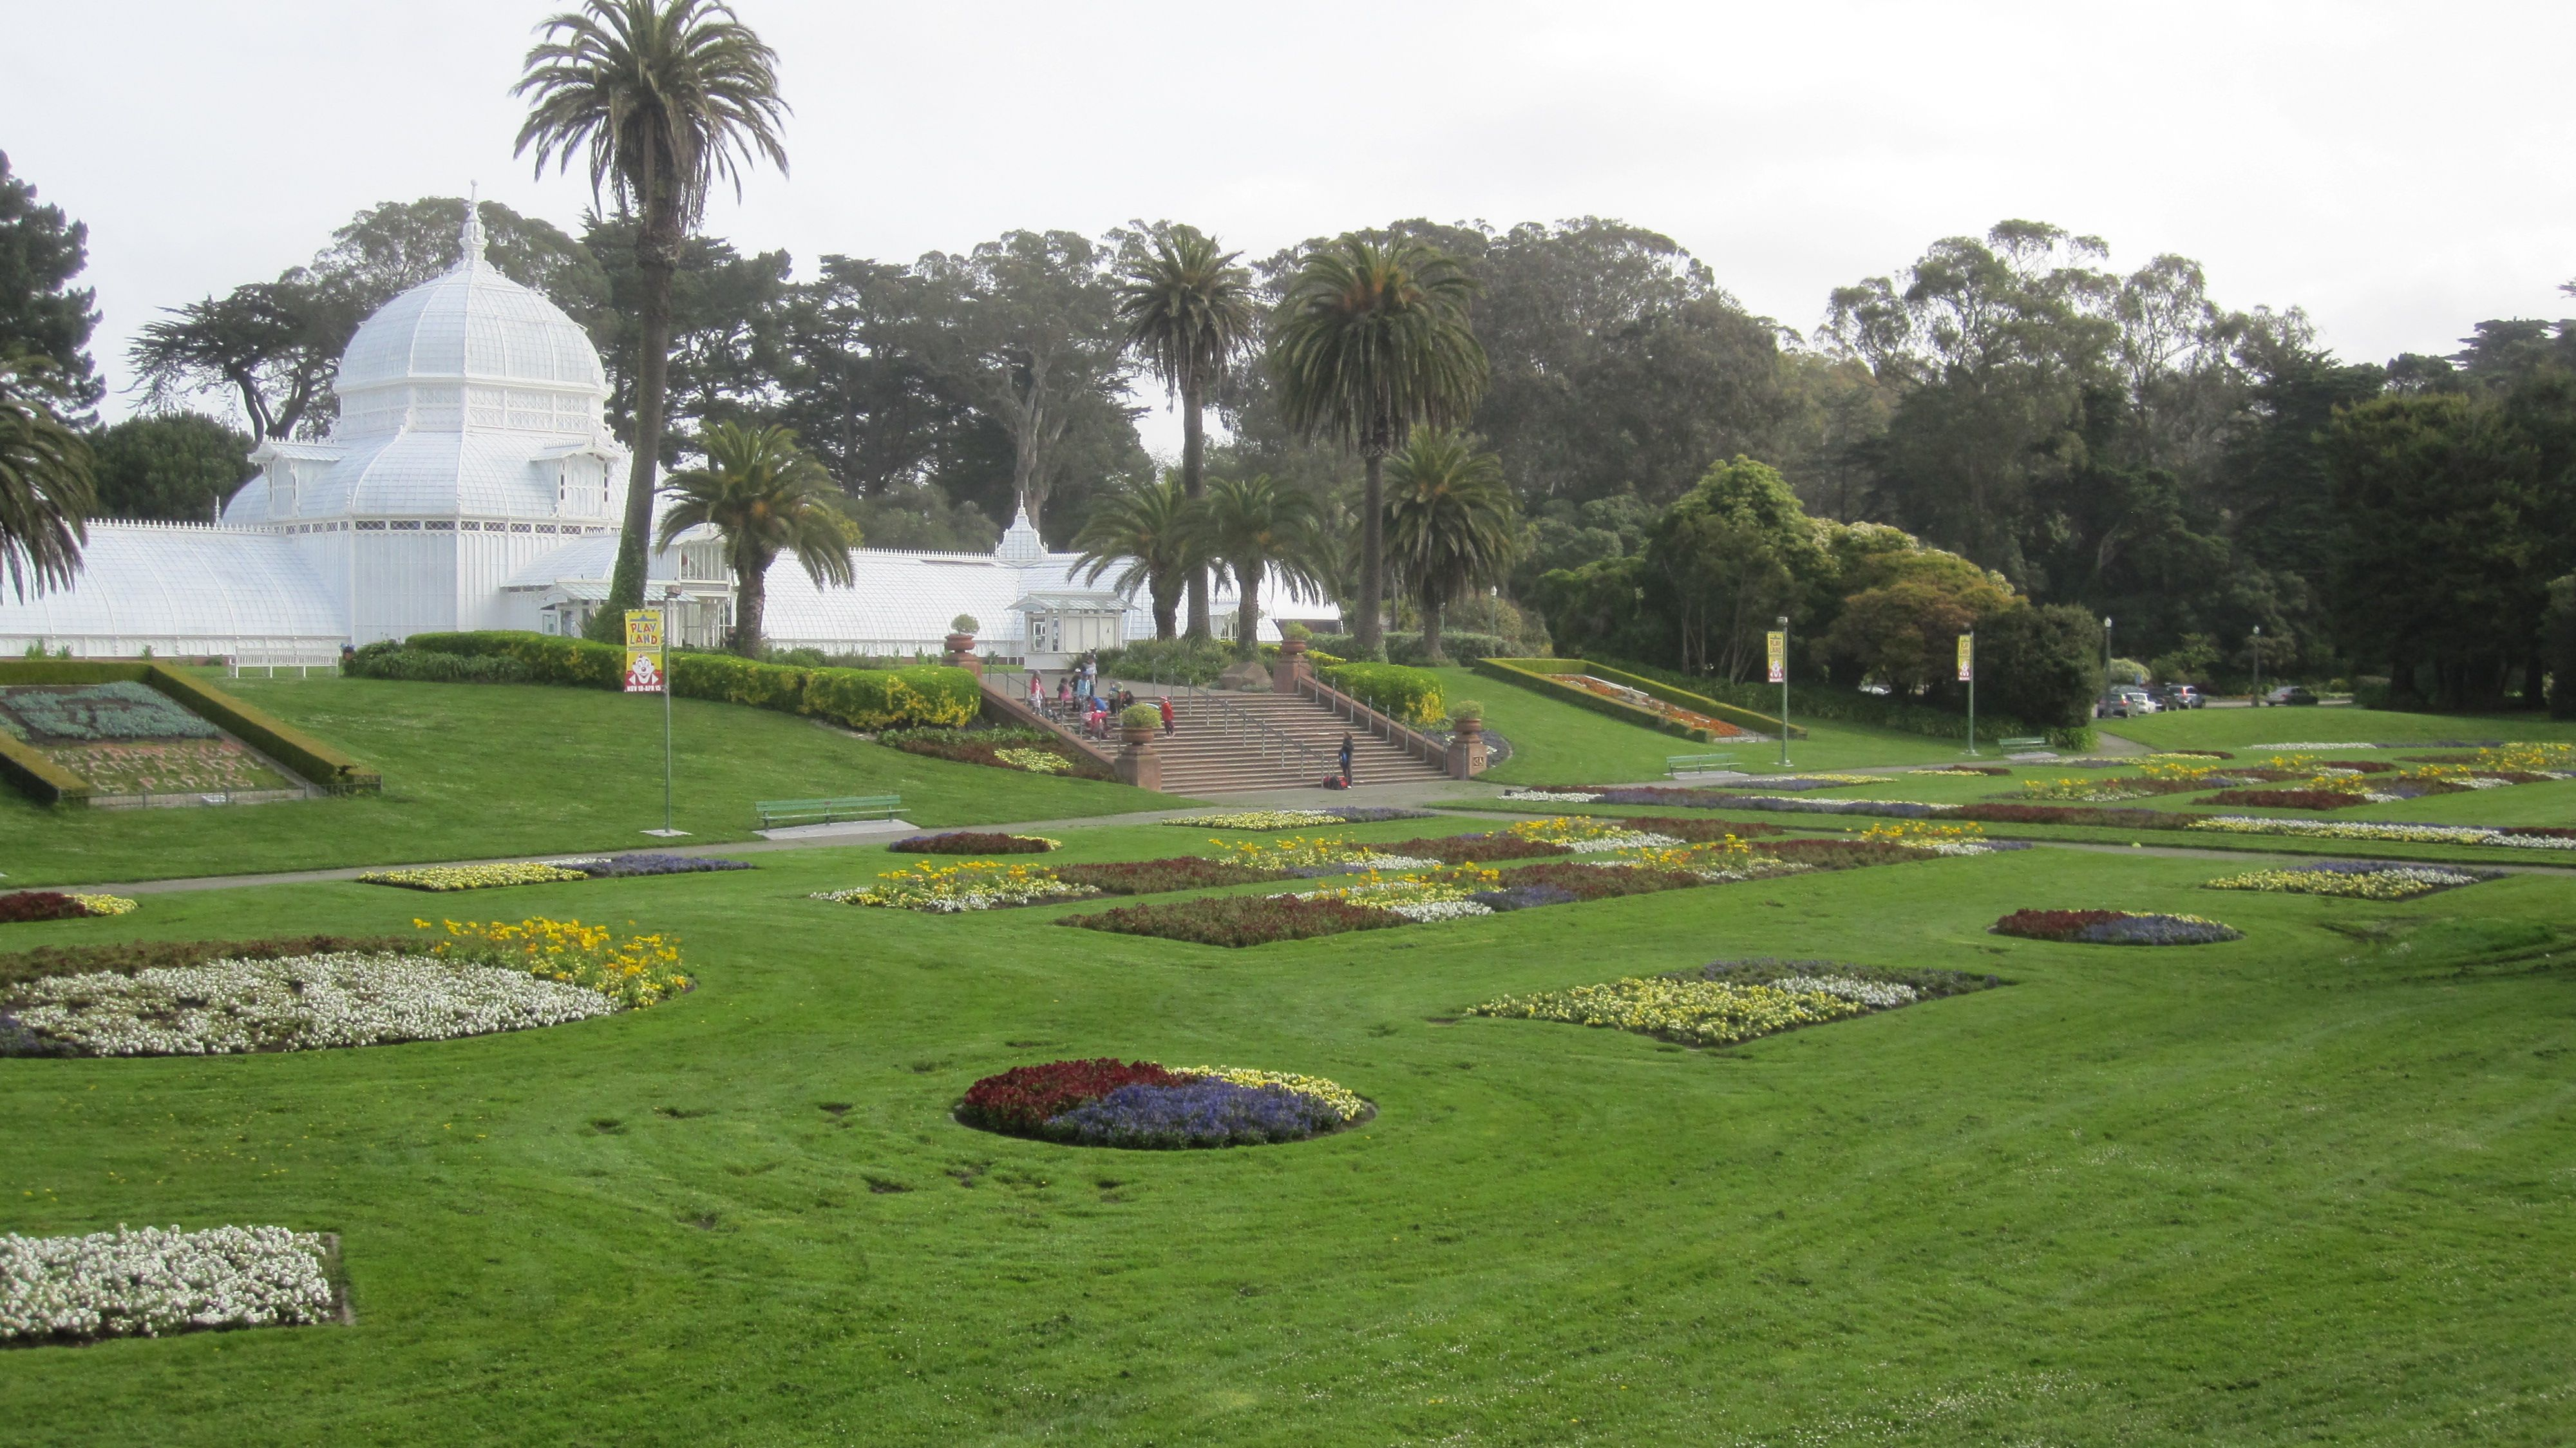 Golden Gate Park in San Francisco, a view of the botanical